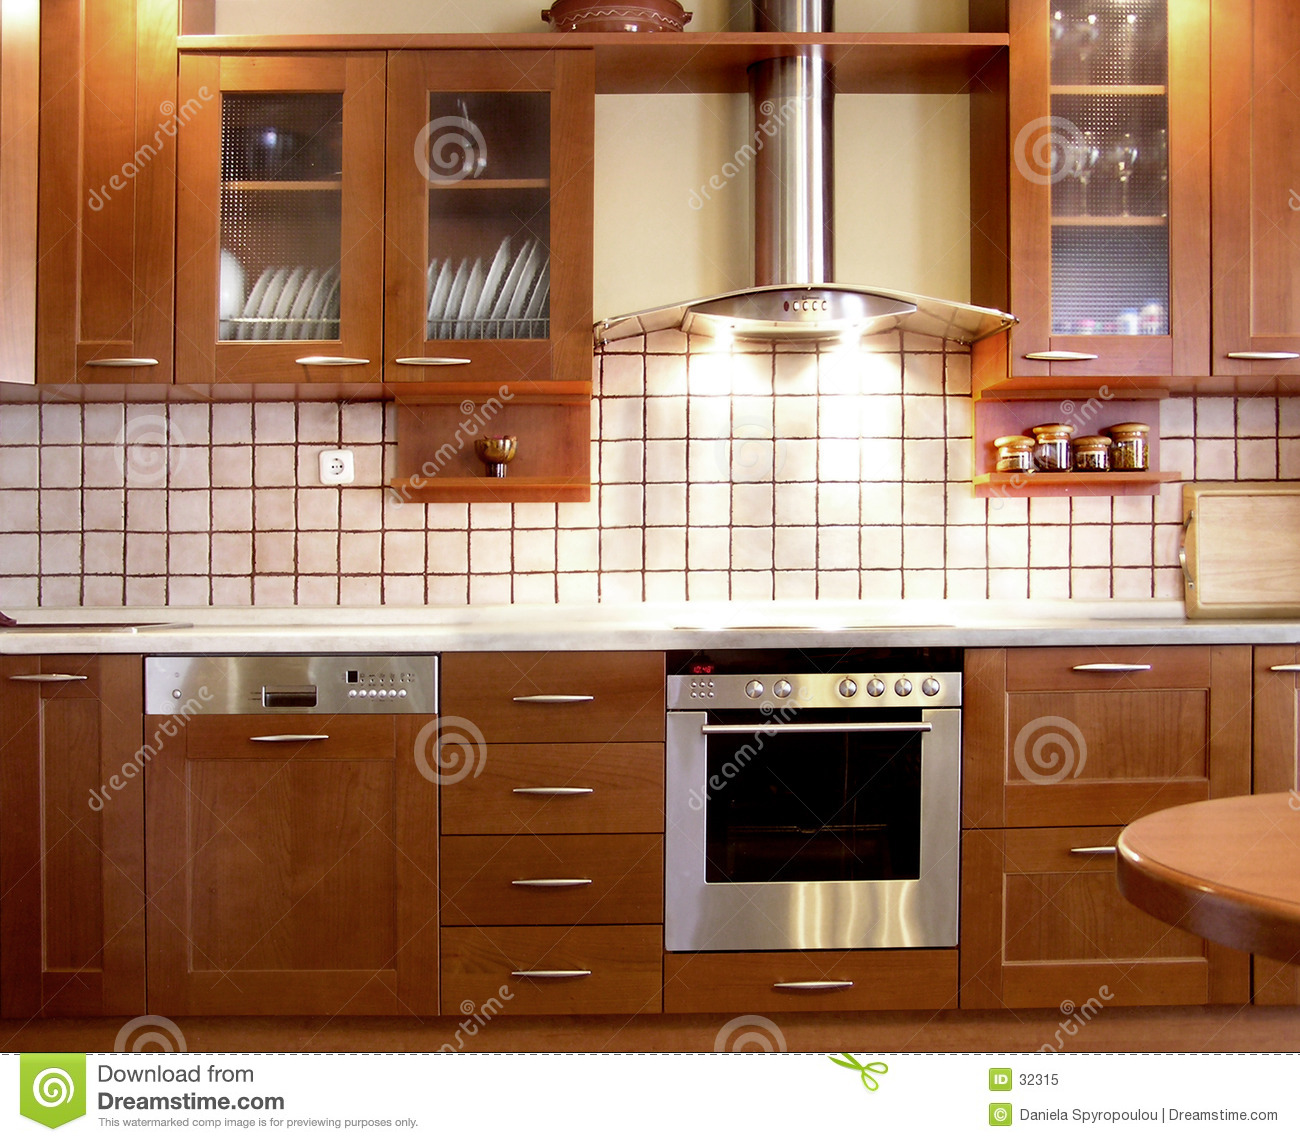 Cherry kitchen design stock image image of kitchens for Free kitchen design